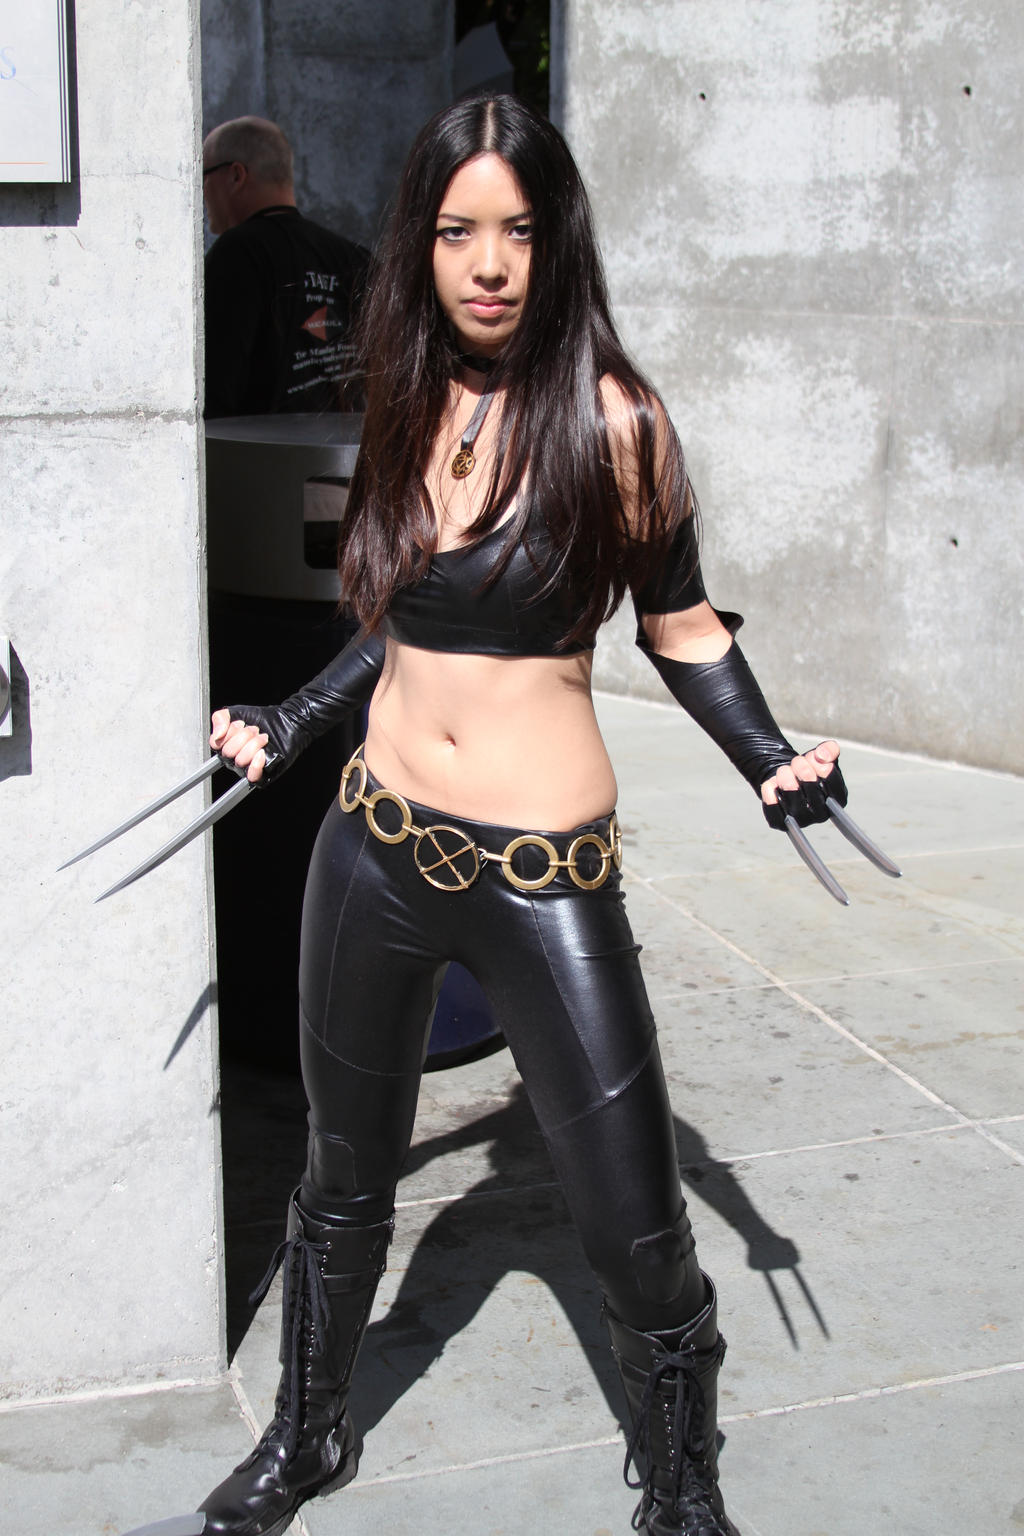 23 Cosplay X-23 by postdramaticX 23 Cosplay Wallpaper